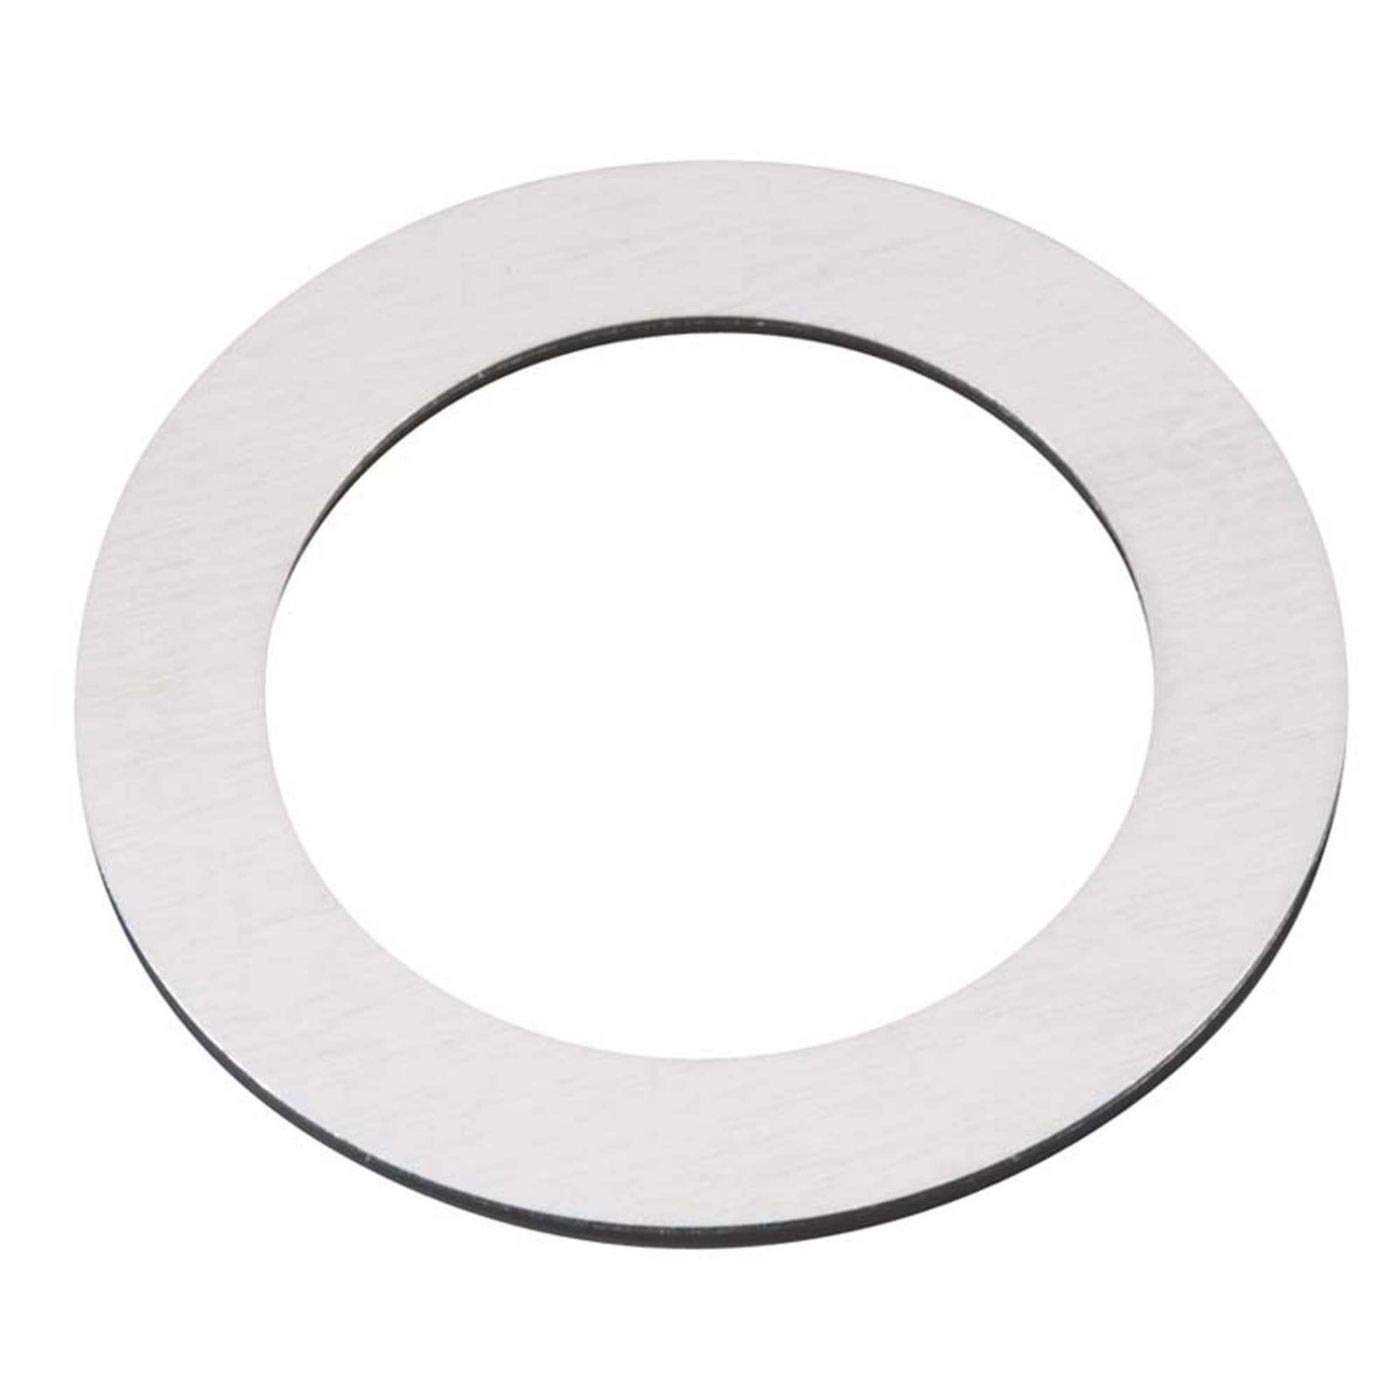 OS Engine 21954160 Gasket Head Aluminum .2mm 19XZ-B Speed by OS Engines